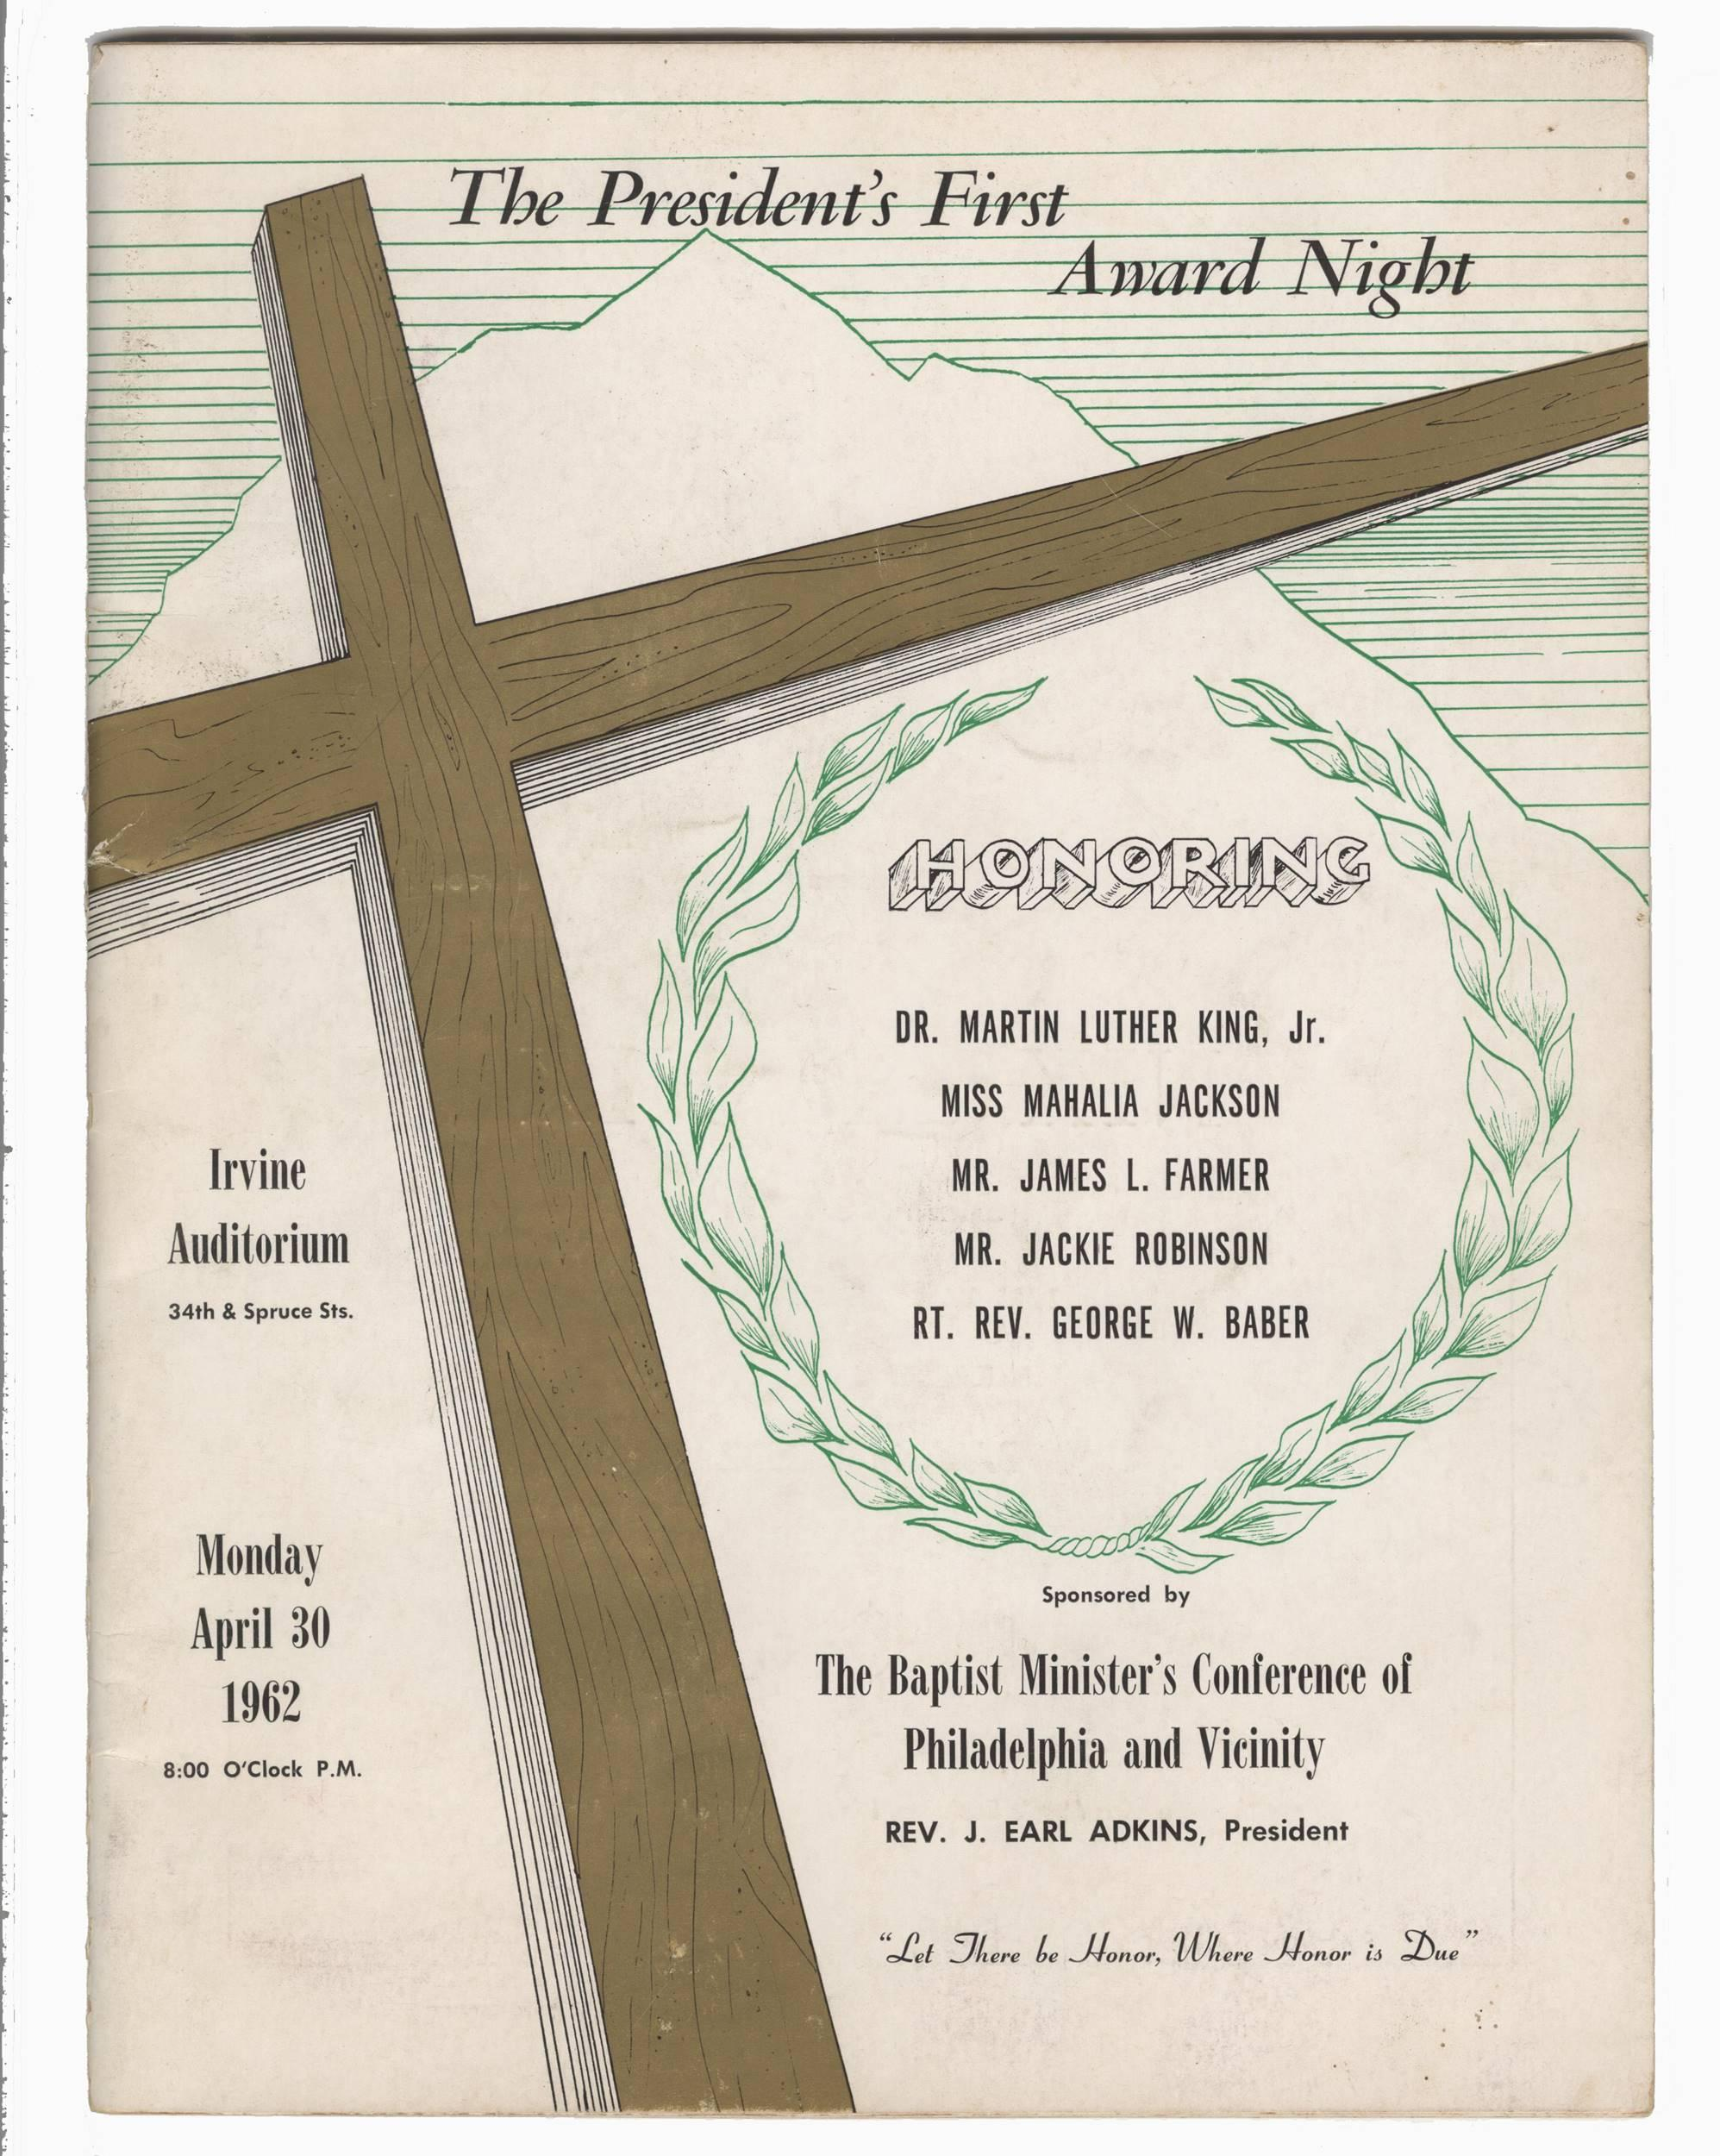 Rare 1962 Program Honoring Martin Luther King and Jackie Robinson